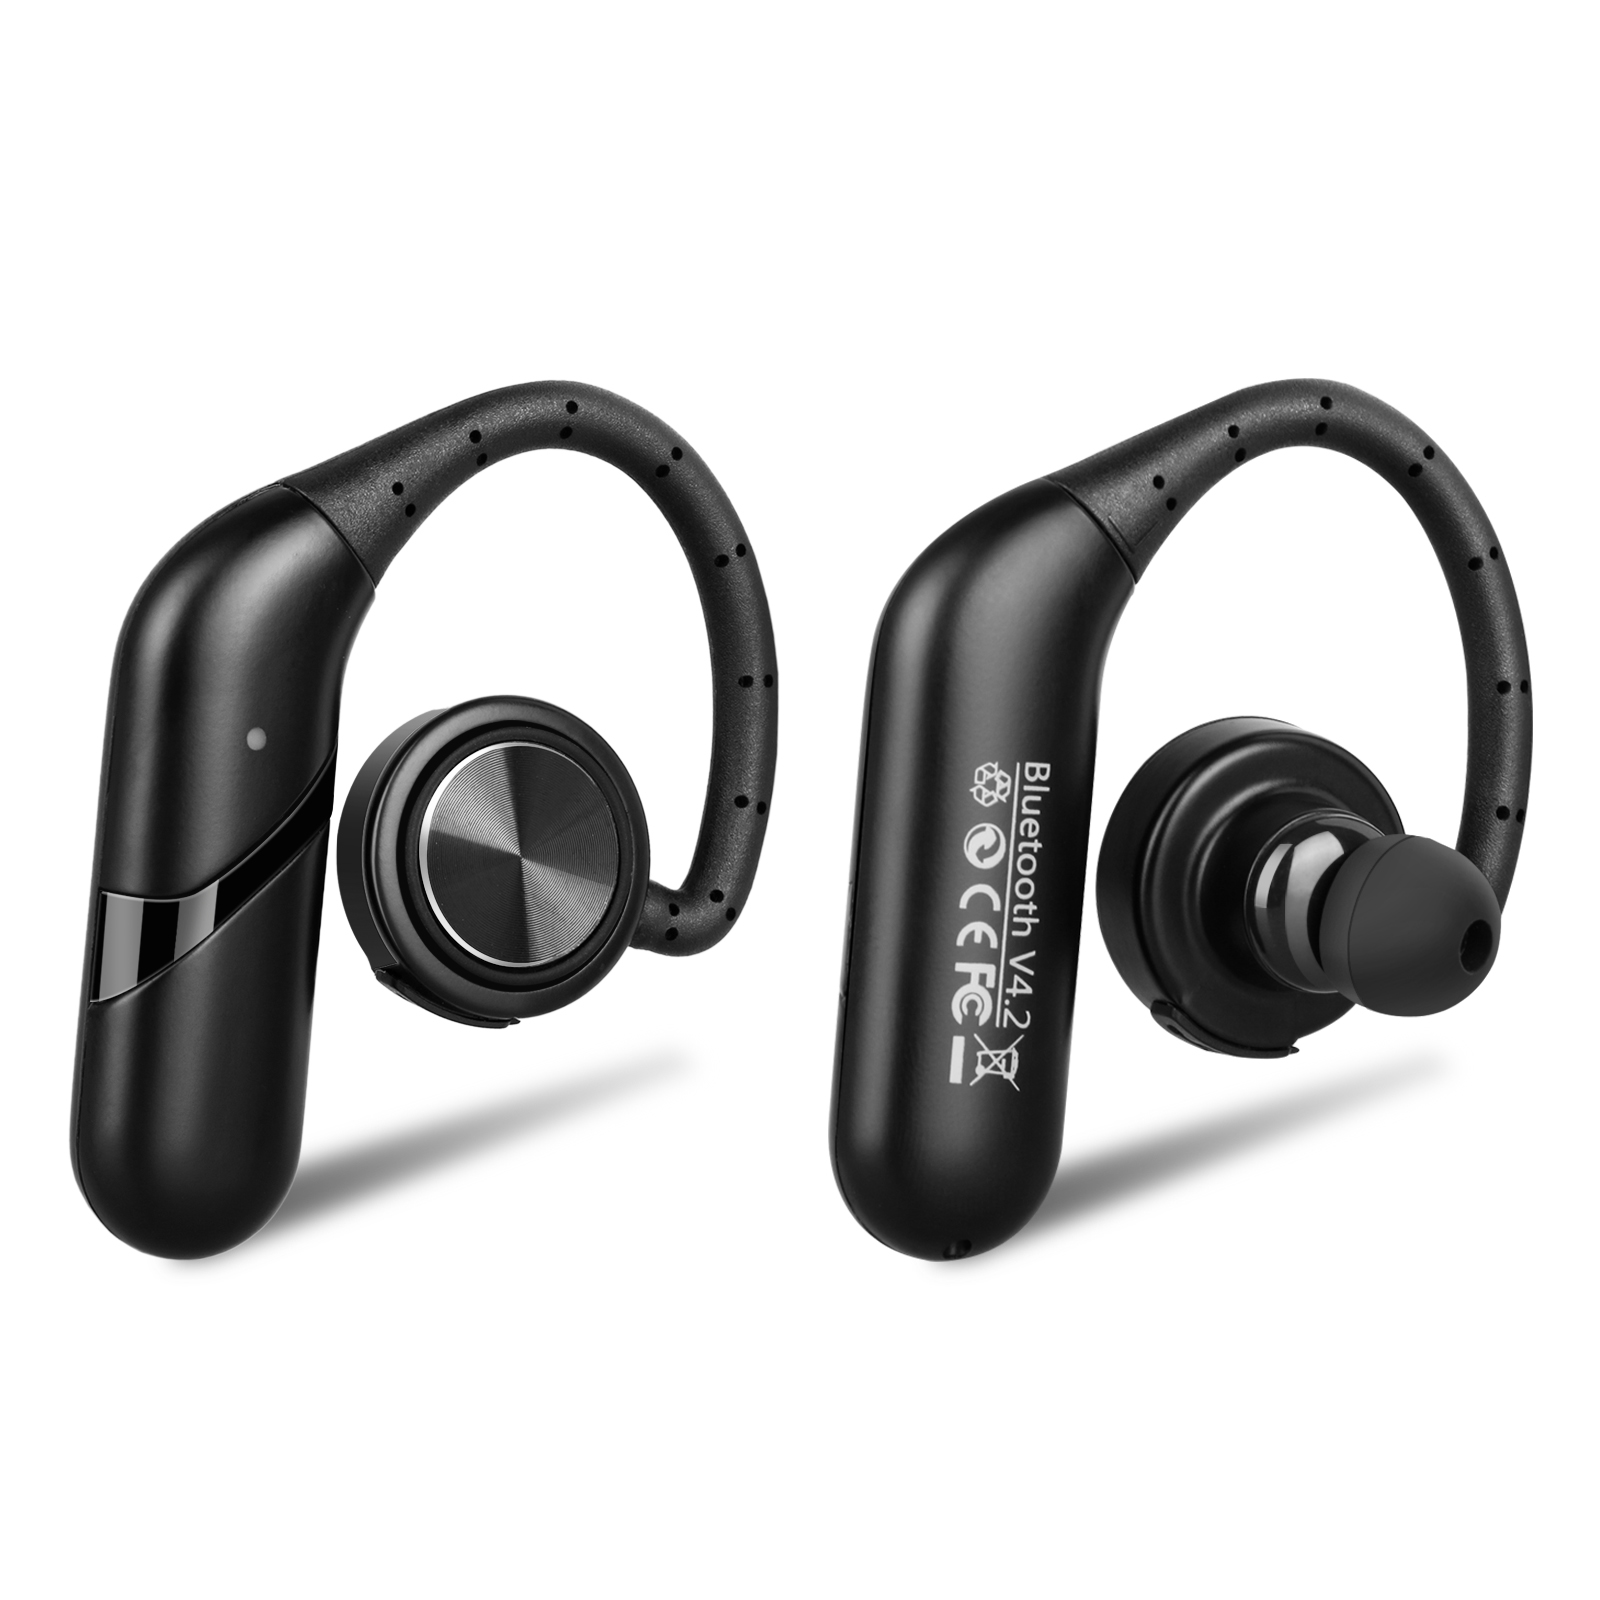 TSV Wireless Earphones High Fidelity Sound Quality Bluetooth V4.2 Headphones Waterproof Wireless Earpieces Built-in Microphone for All Bluetooth Devices